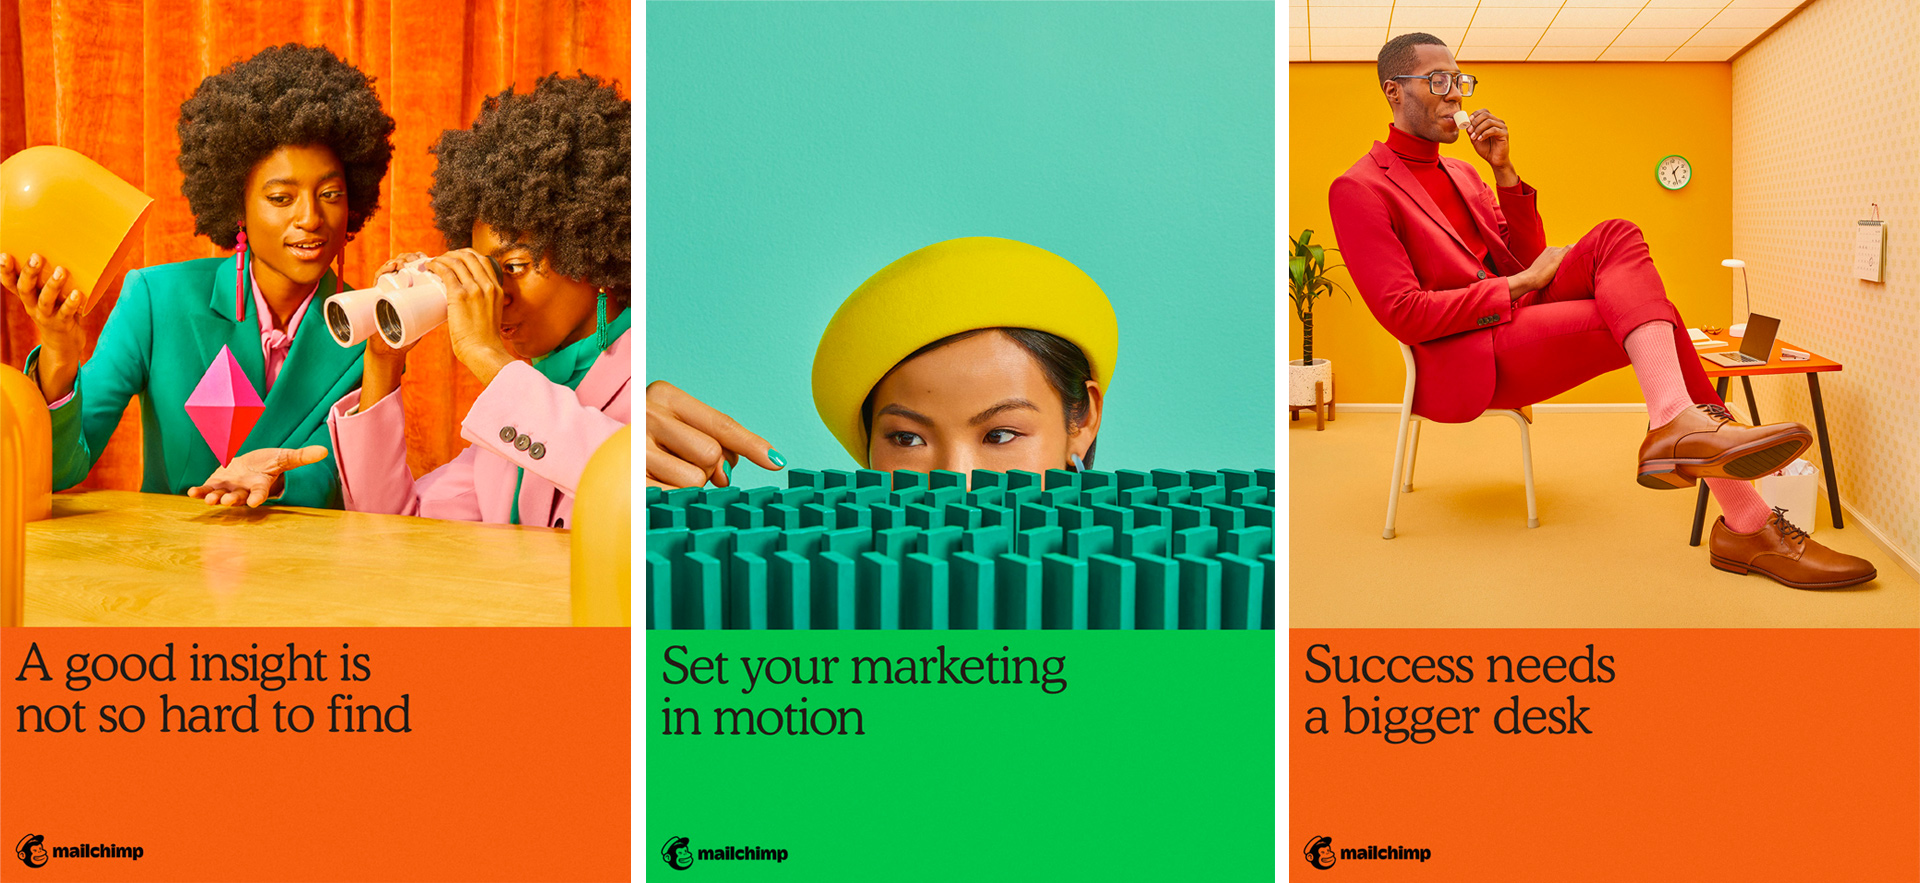 Mailchimp_Tapestry_Retouching_Post